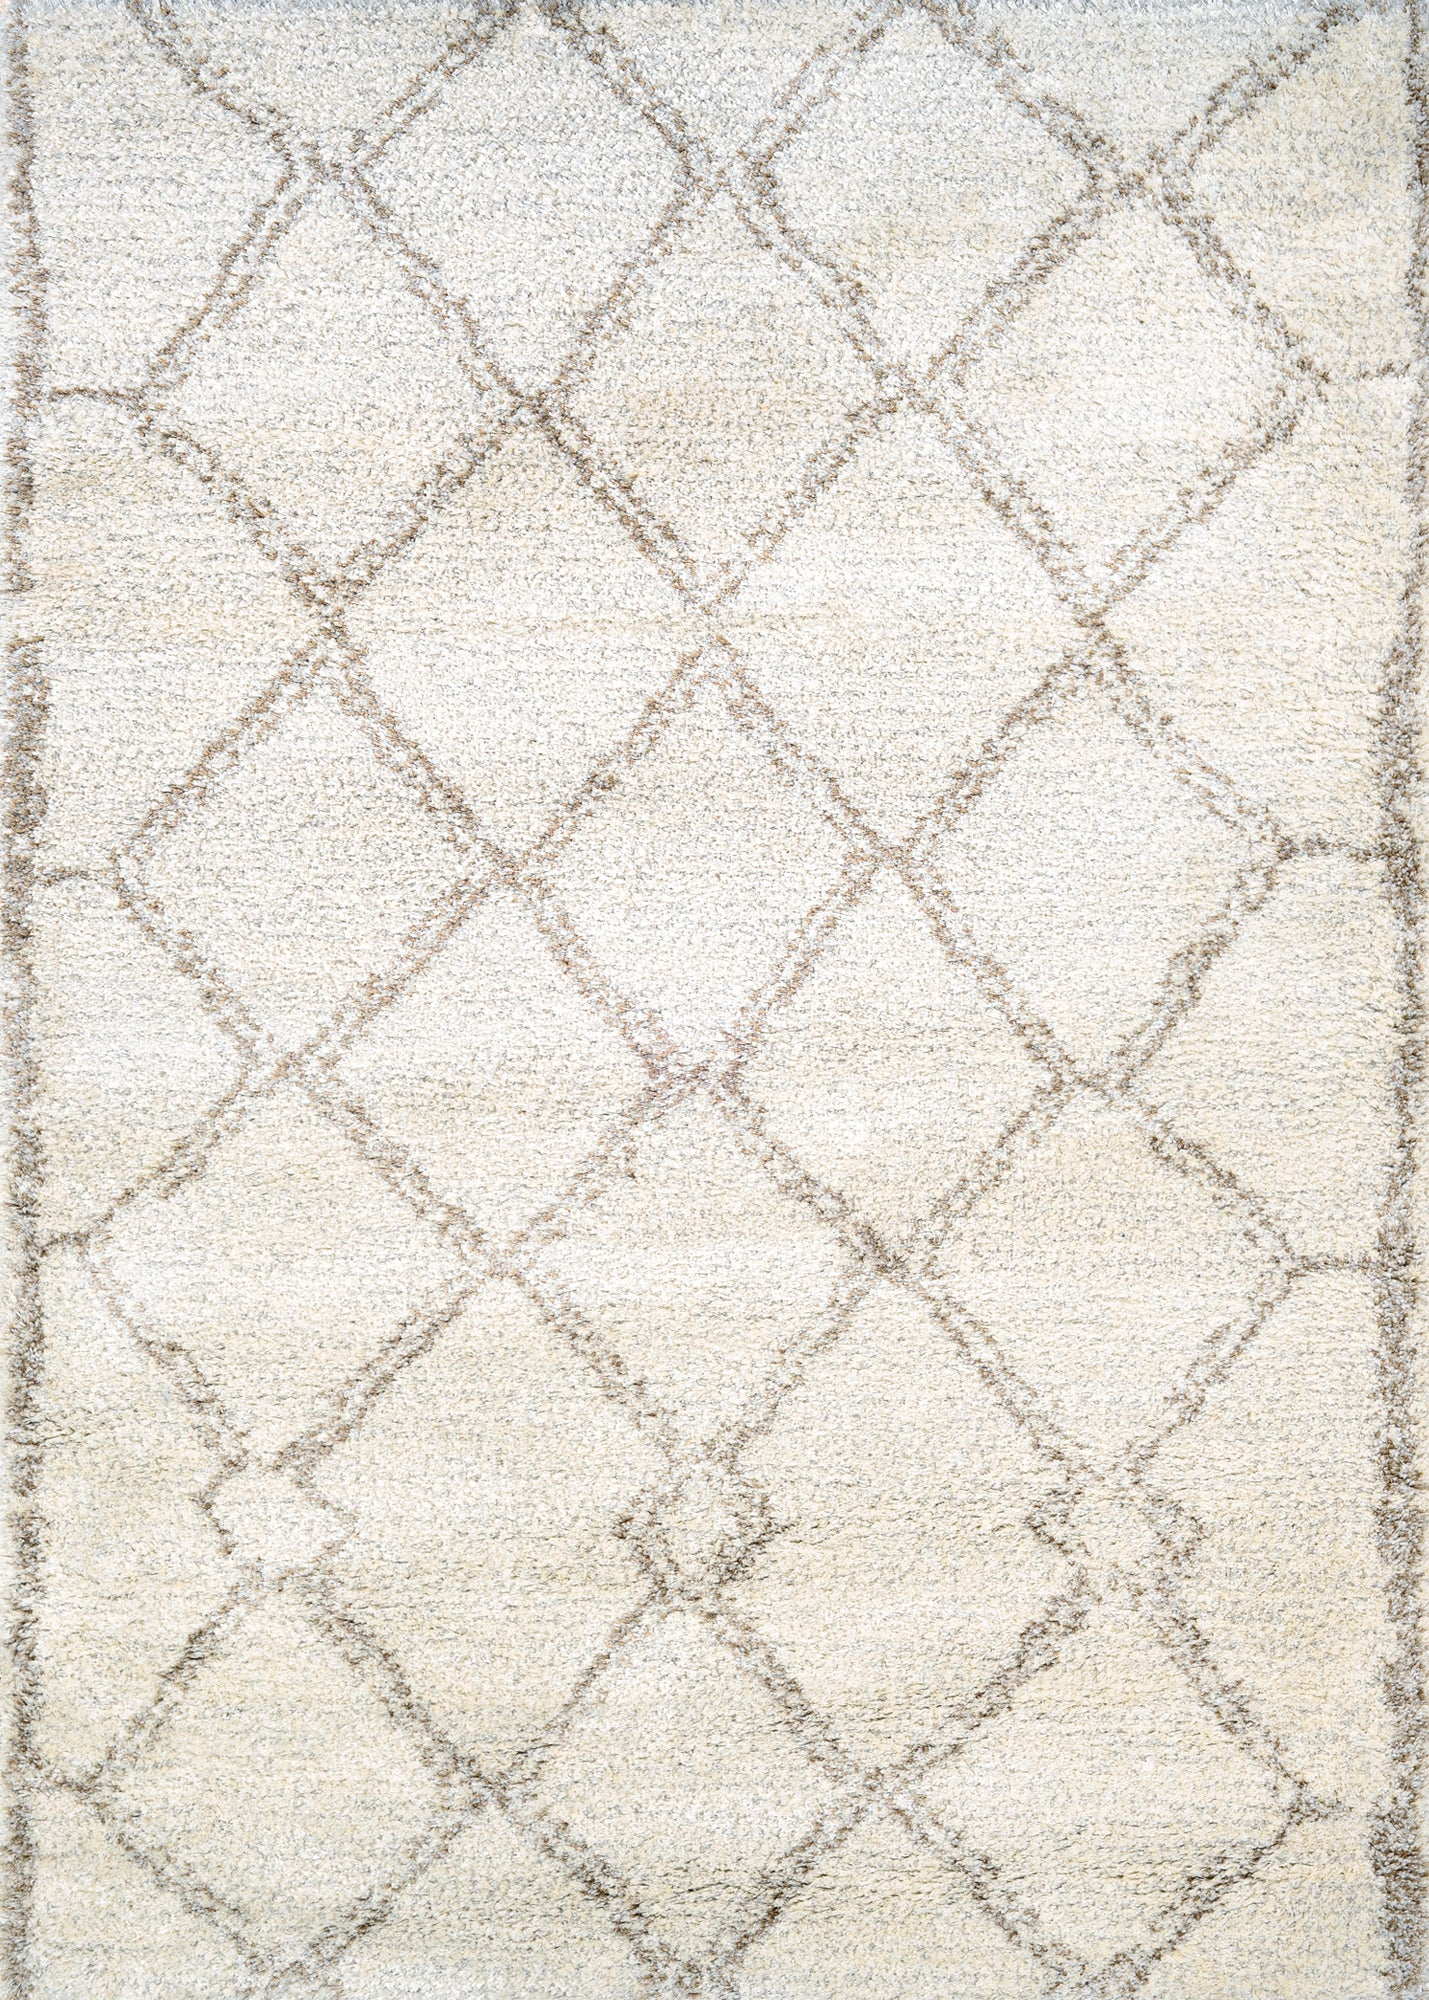 Couristan Bromley Pinnacle Ivory Camel Area Rug Incredible Rugs And Decor